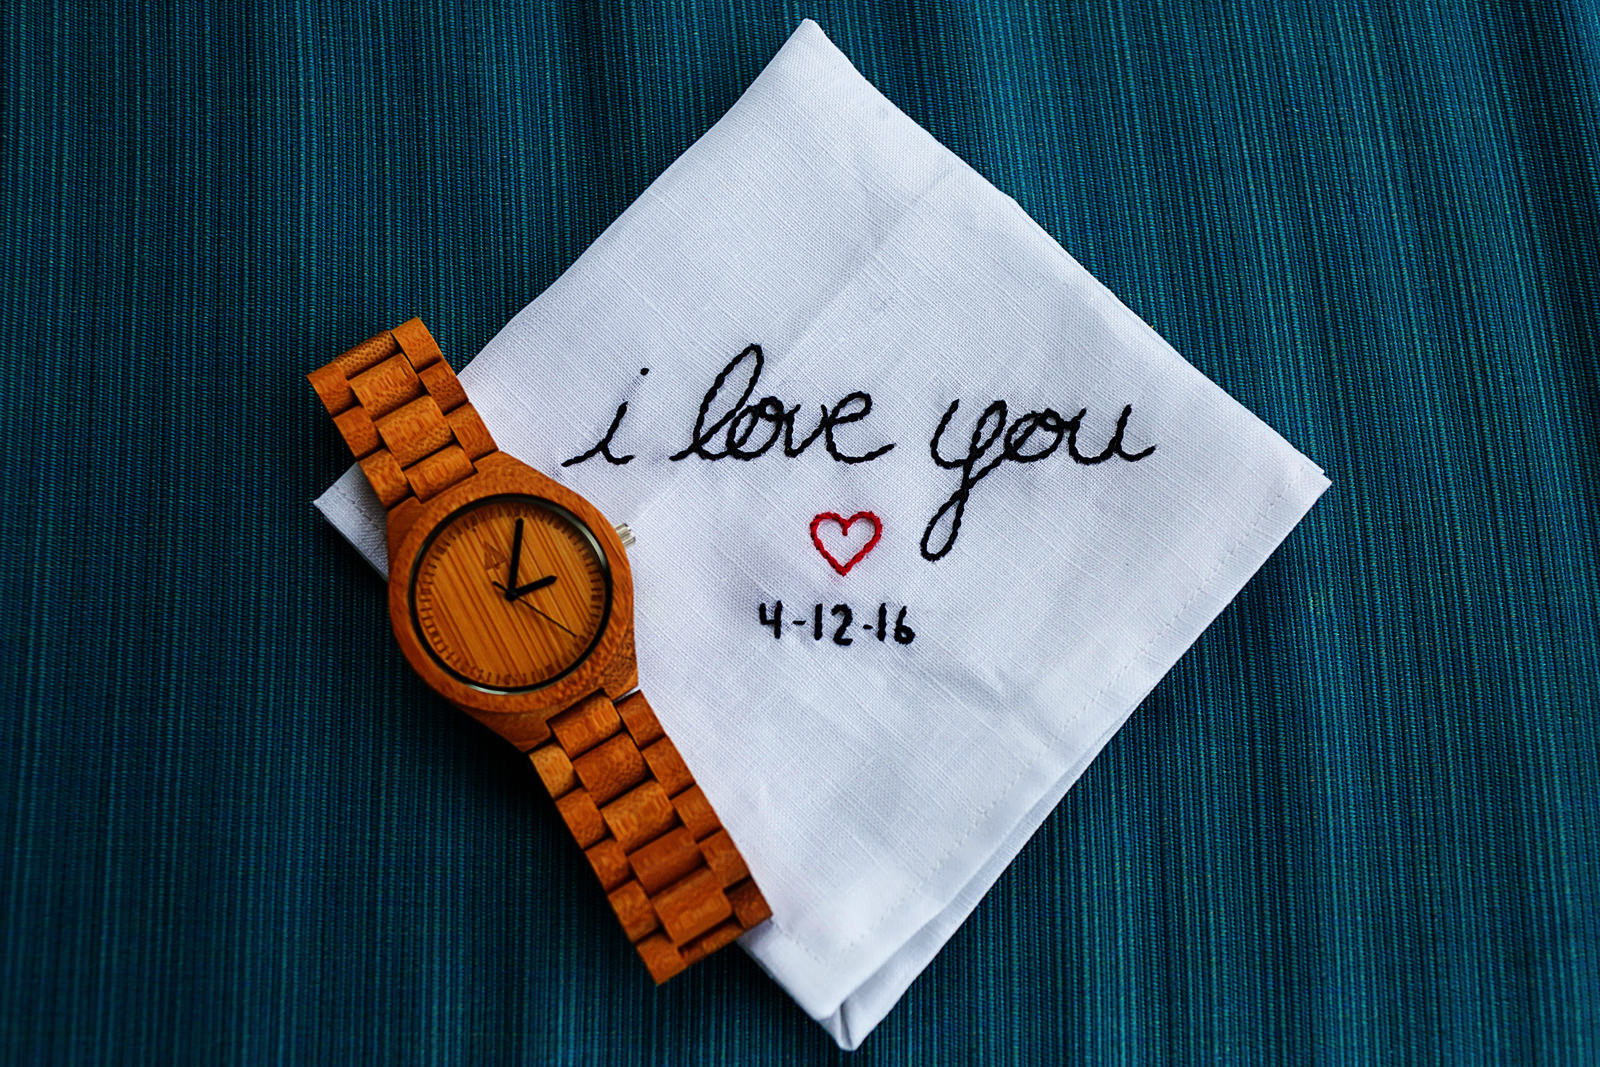 handkerchief with words I LOVE YOU and wedding date embroiled next to wood wrist watch